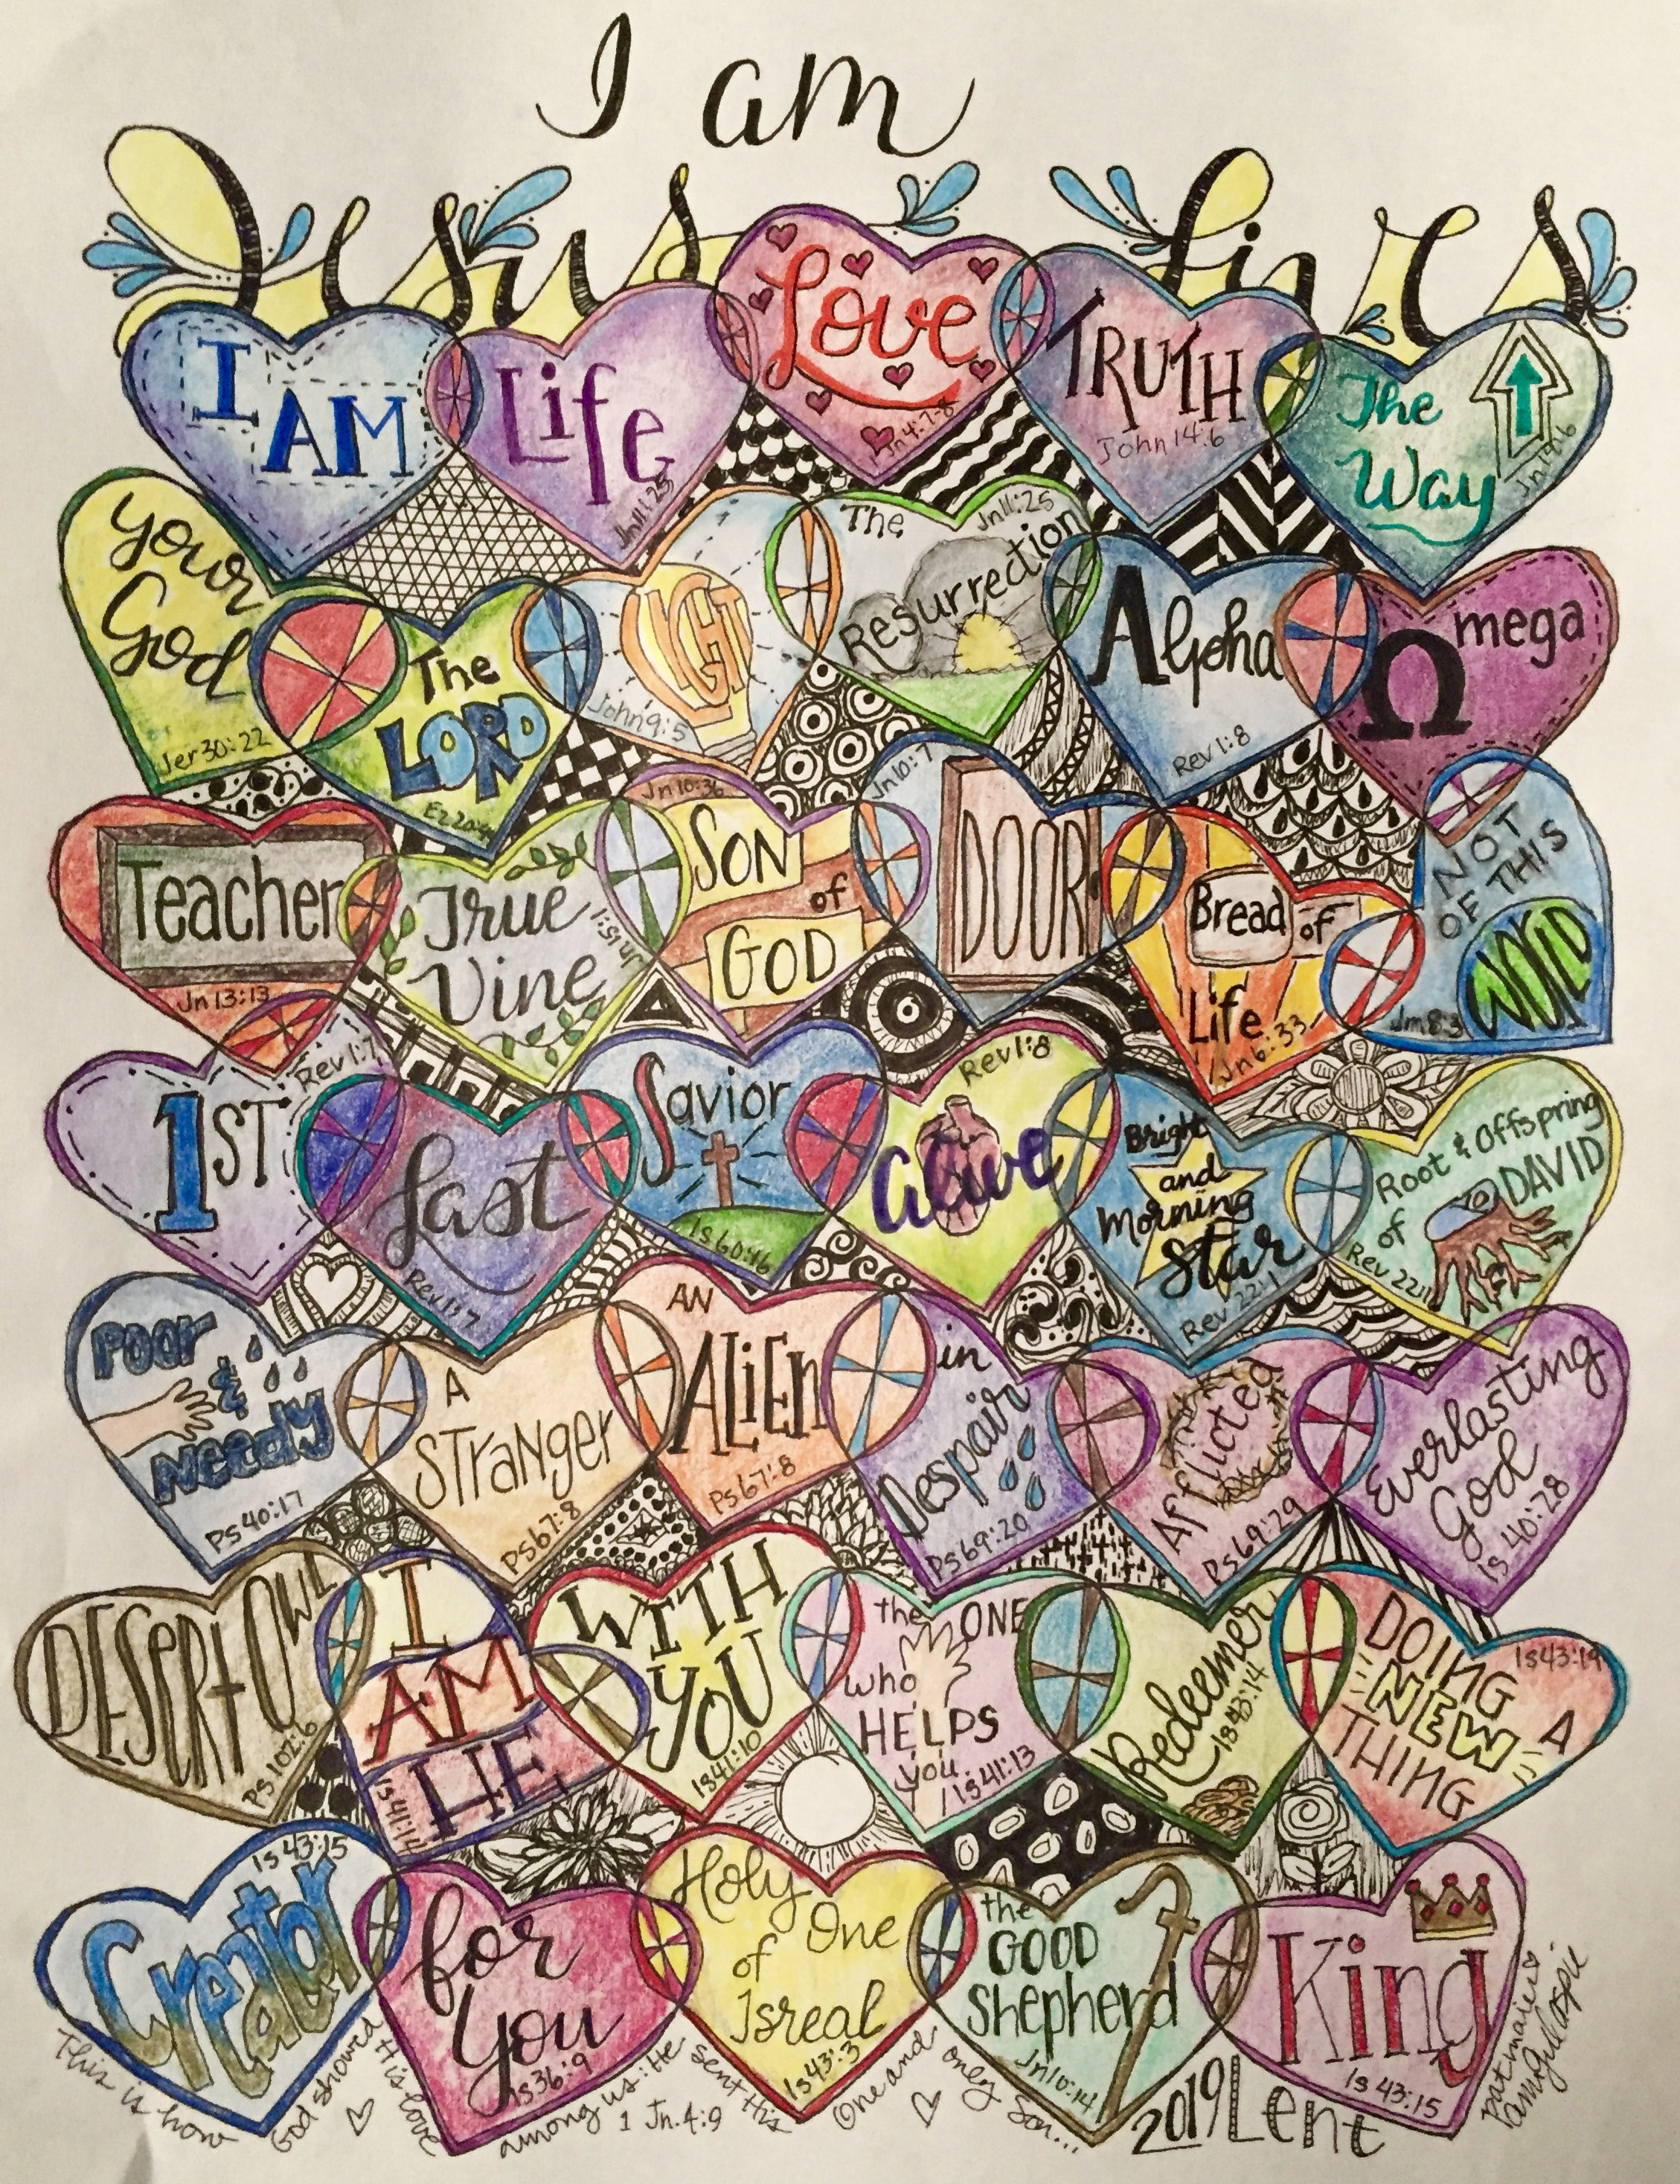 The I AM statements were the focus for Lent for Ann Gillaspie- a Visual Faith Coach. She enjoyed doodling in t the negative spaces as she continued to contemplate what the I Am statements meant to her.